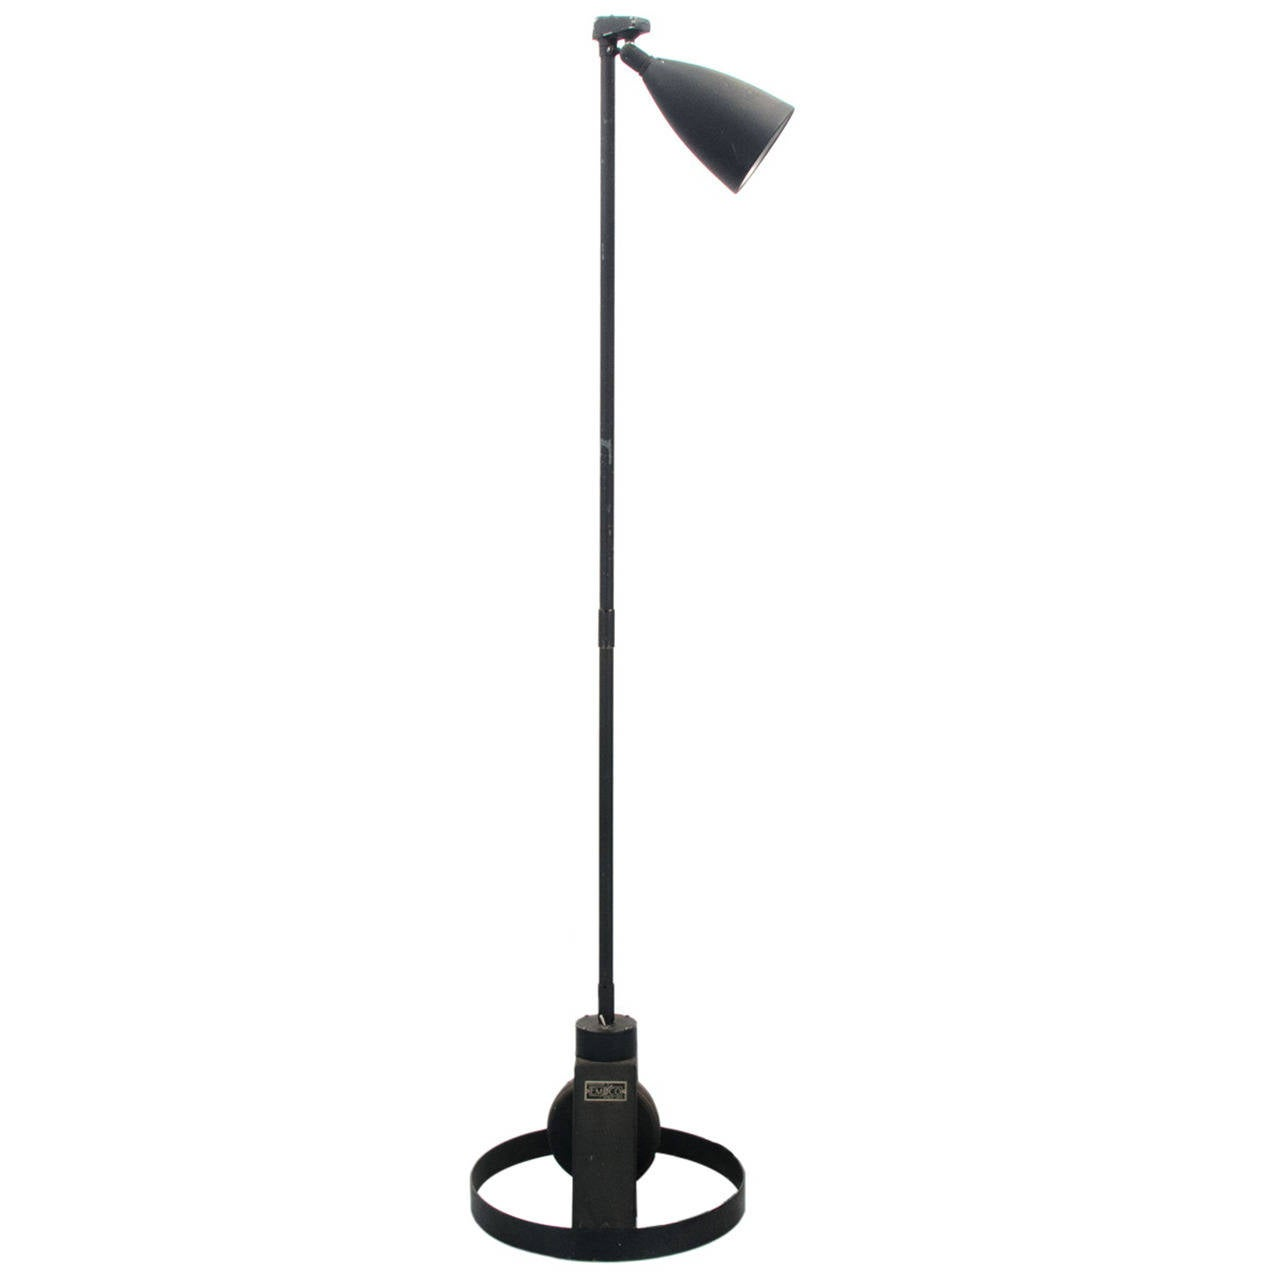 Minimalist Floor Lamp Minimalist Industrial Floor Lamp At 1stdibs